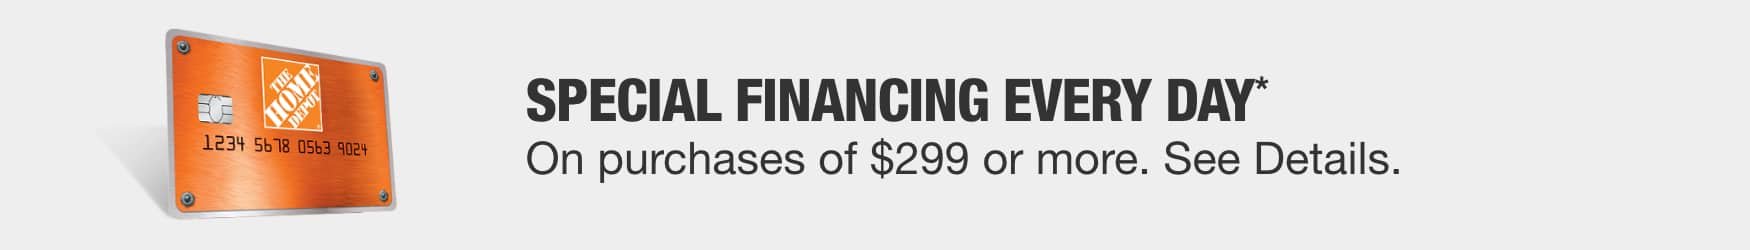 Banner Image. Special Financing Every Day On Purchases Of $299 Or More.